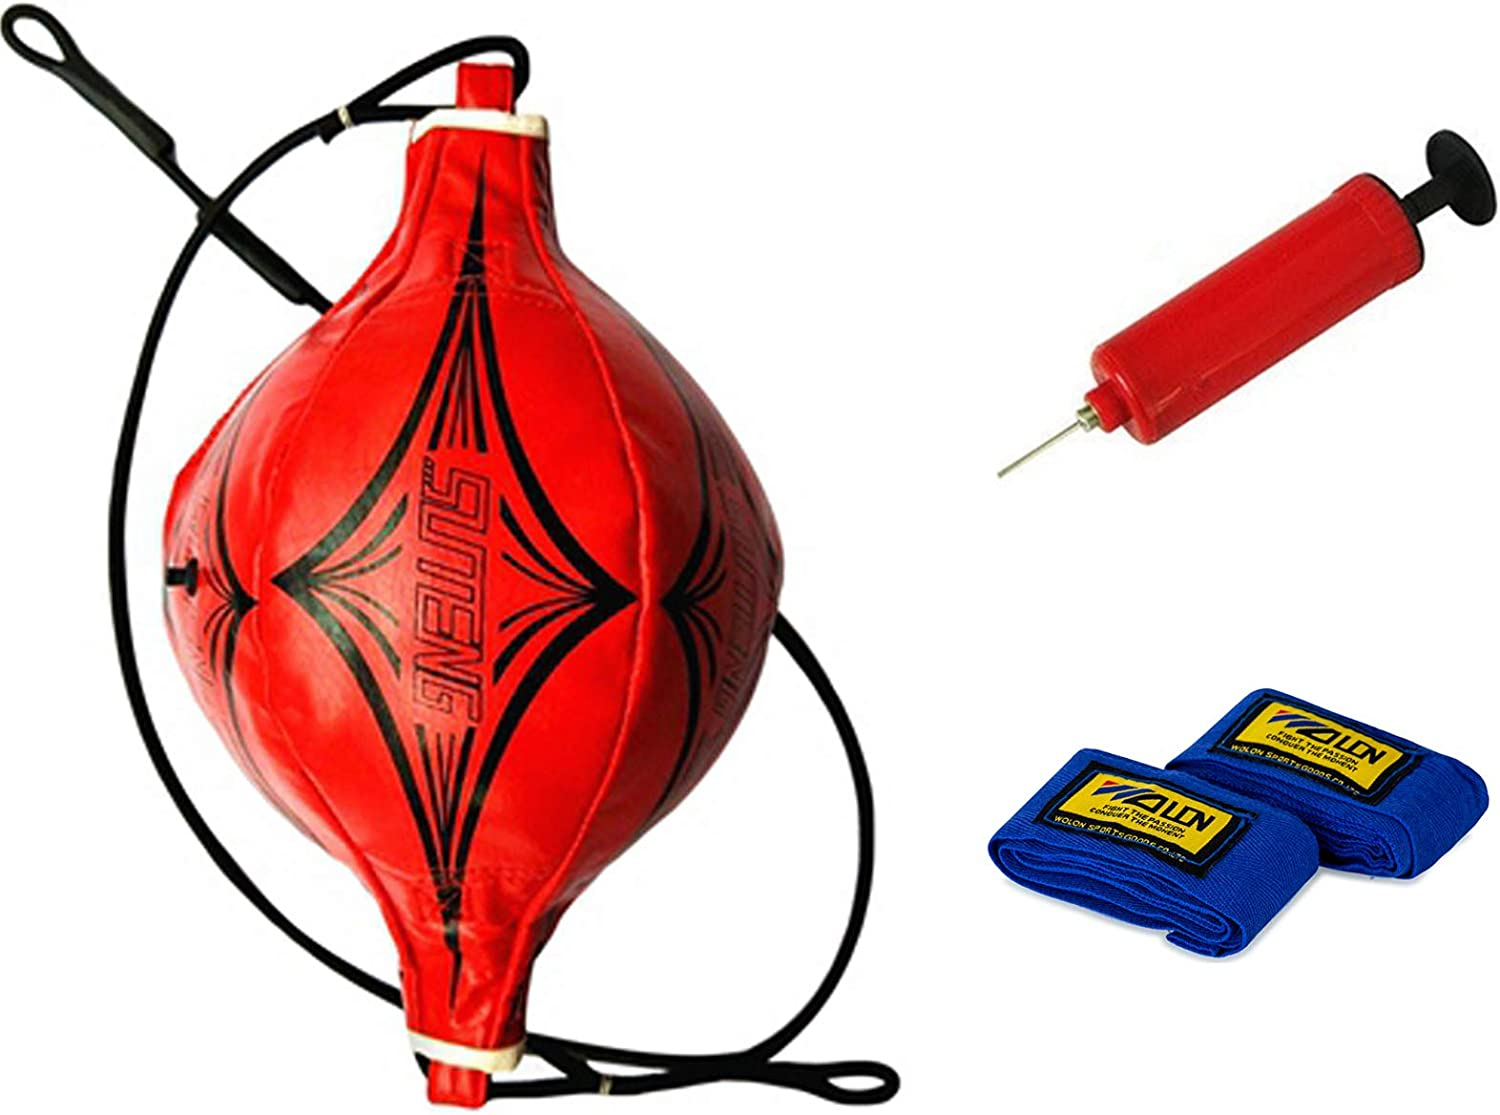 Sfeexun Double End Discount mail order Punching Bag Ranking TOP3 Boxing Air Pump with Speed Ball